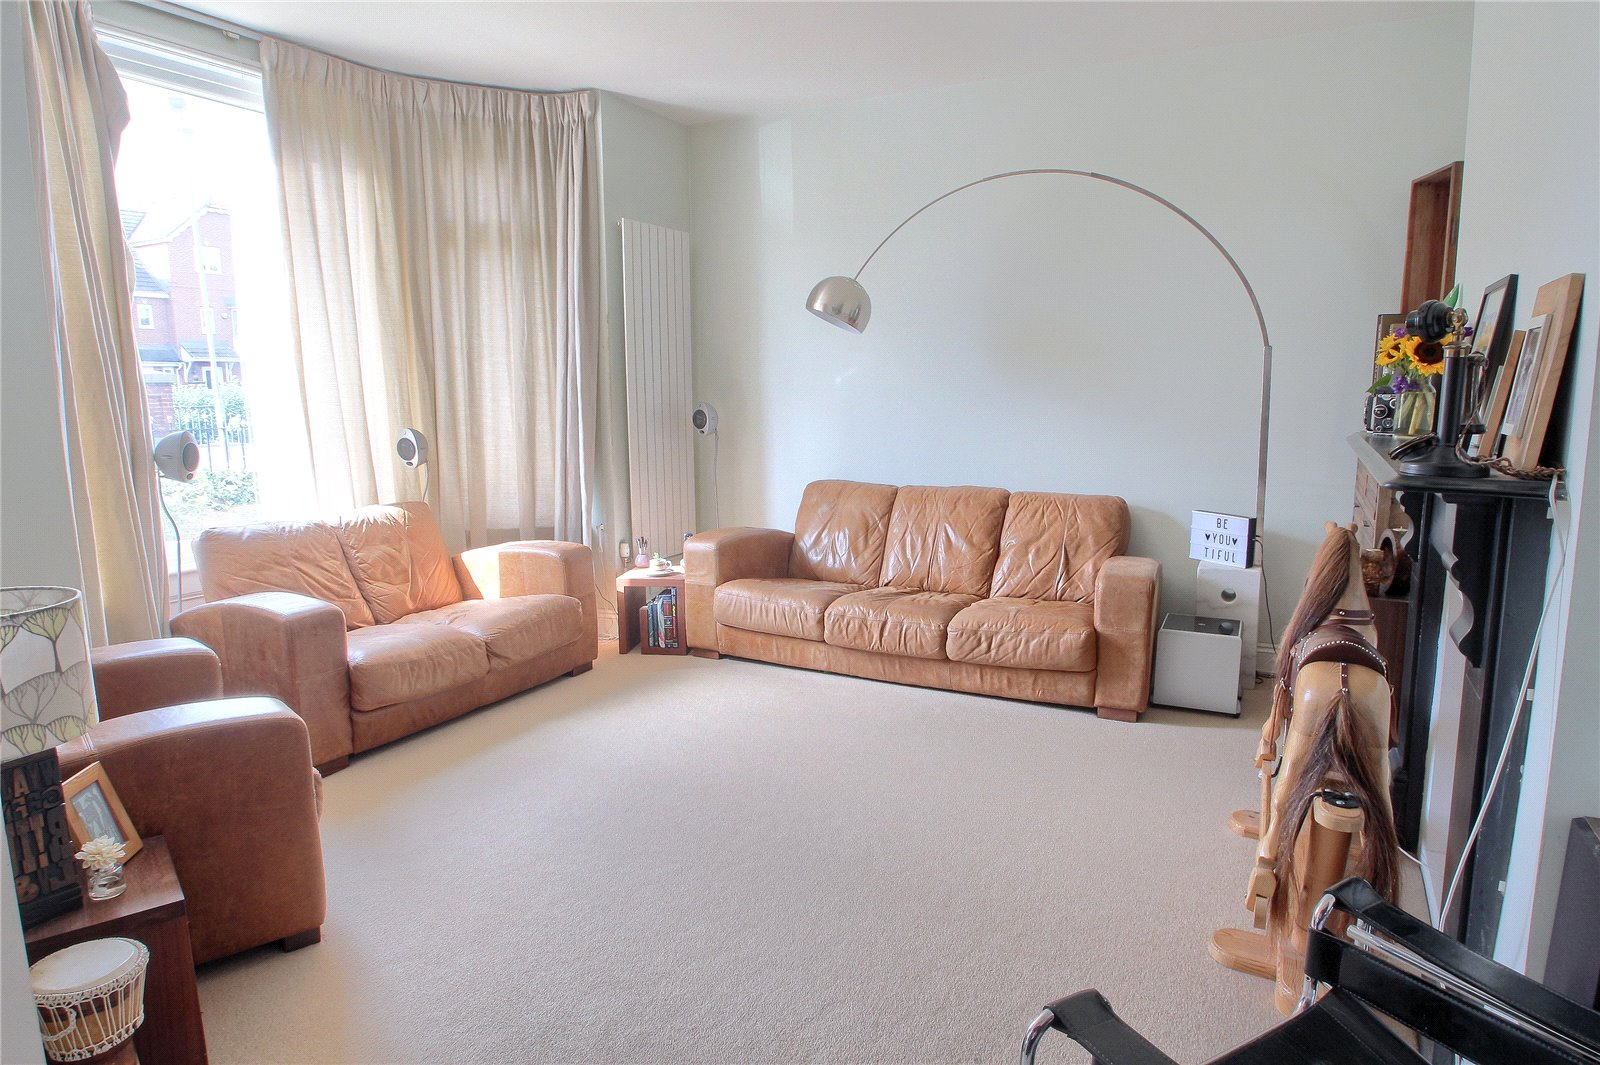 5 bed house for sale in Varo Terrace, Stockton-on-Tees  - Property Image 3